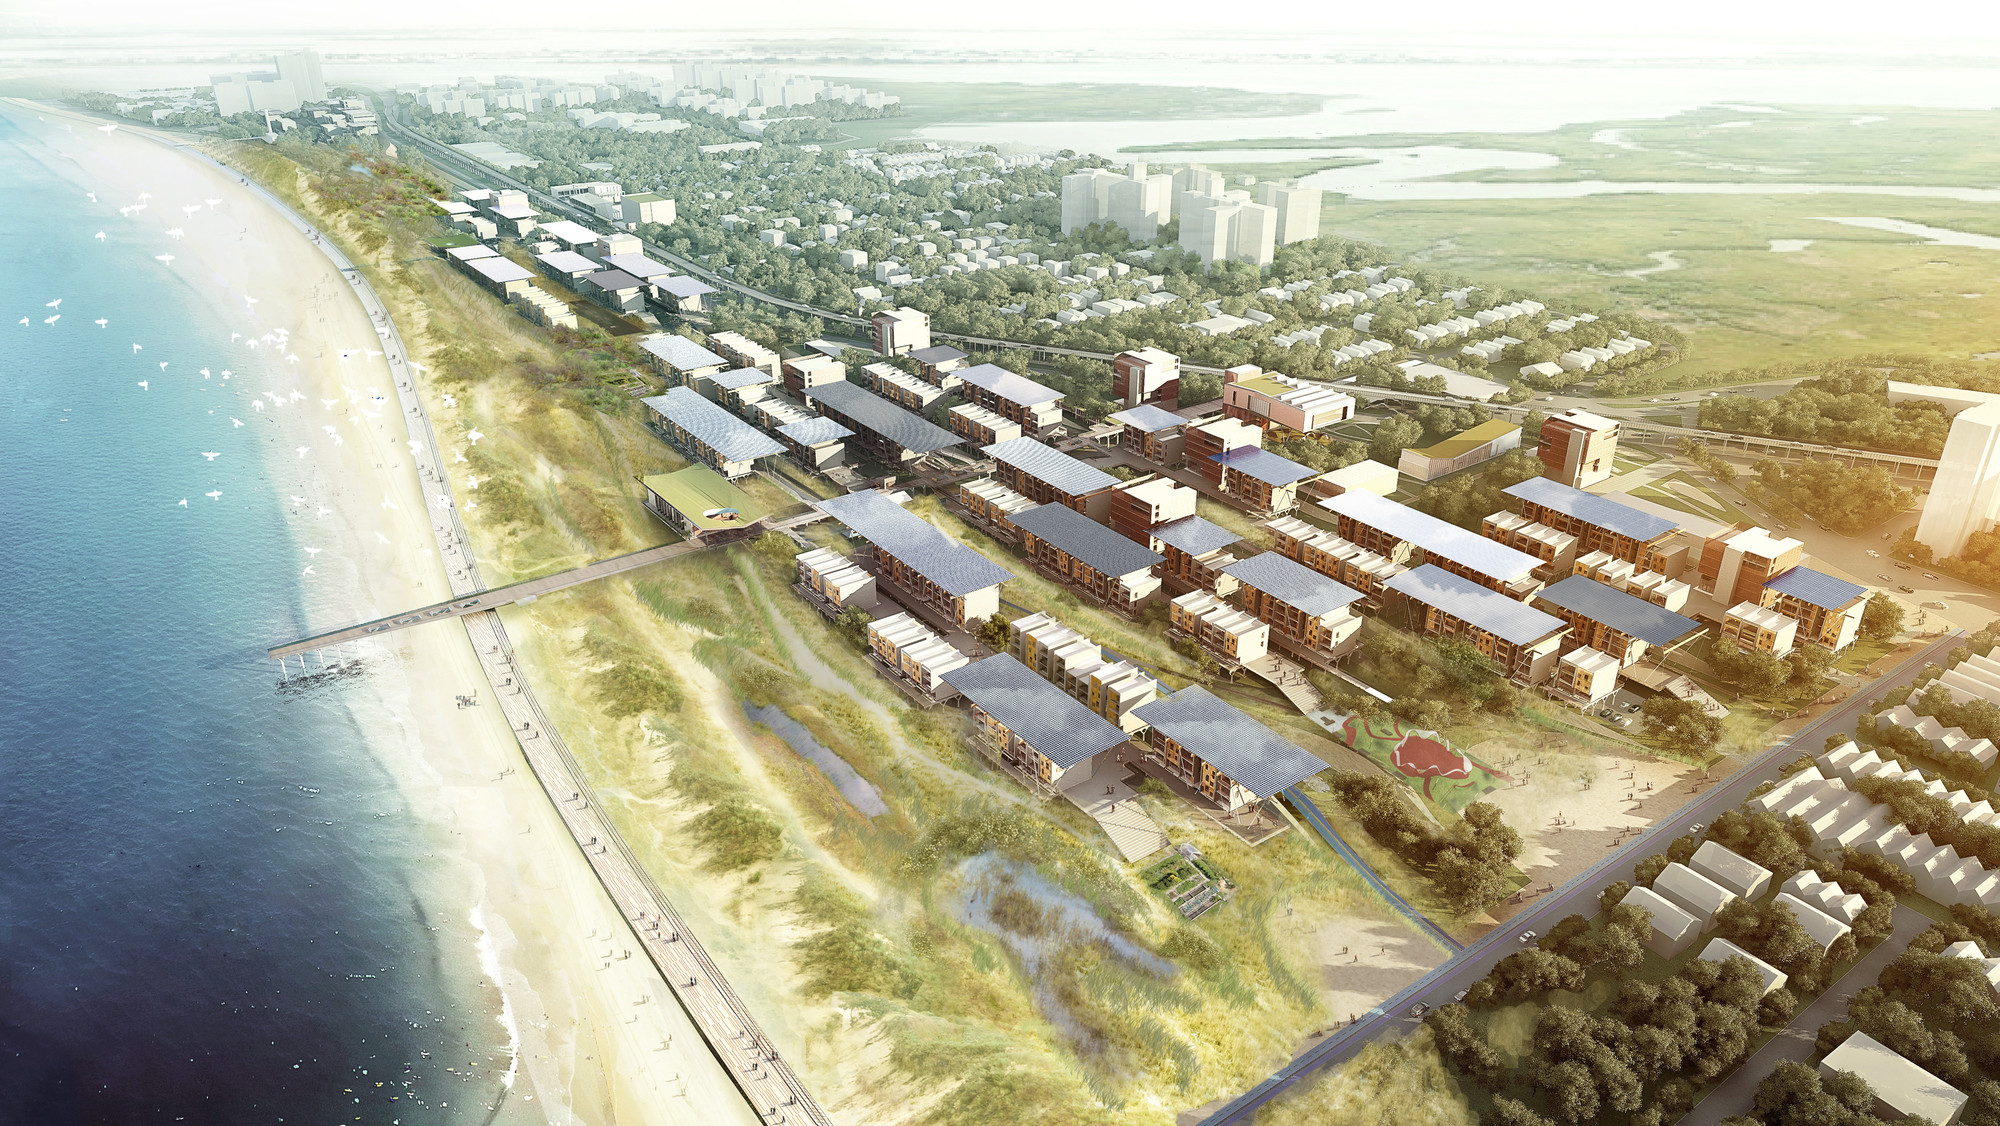 Aerial View: The strategy is to increase the density and intensity of both the ecological and urban characteristics of the site, maximizing the potential benefit of each. Image Courtesy of Ennead Lab